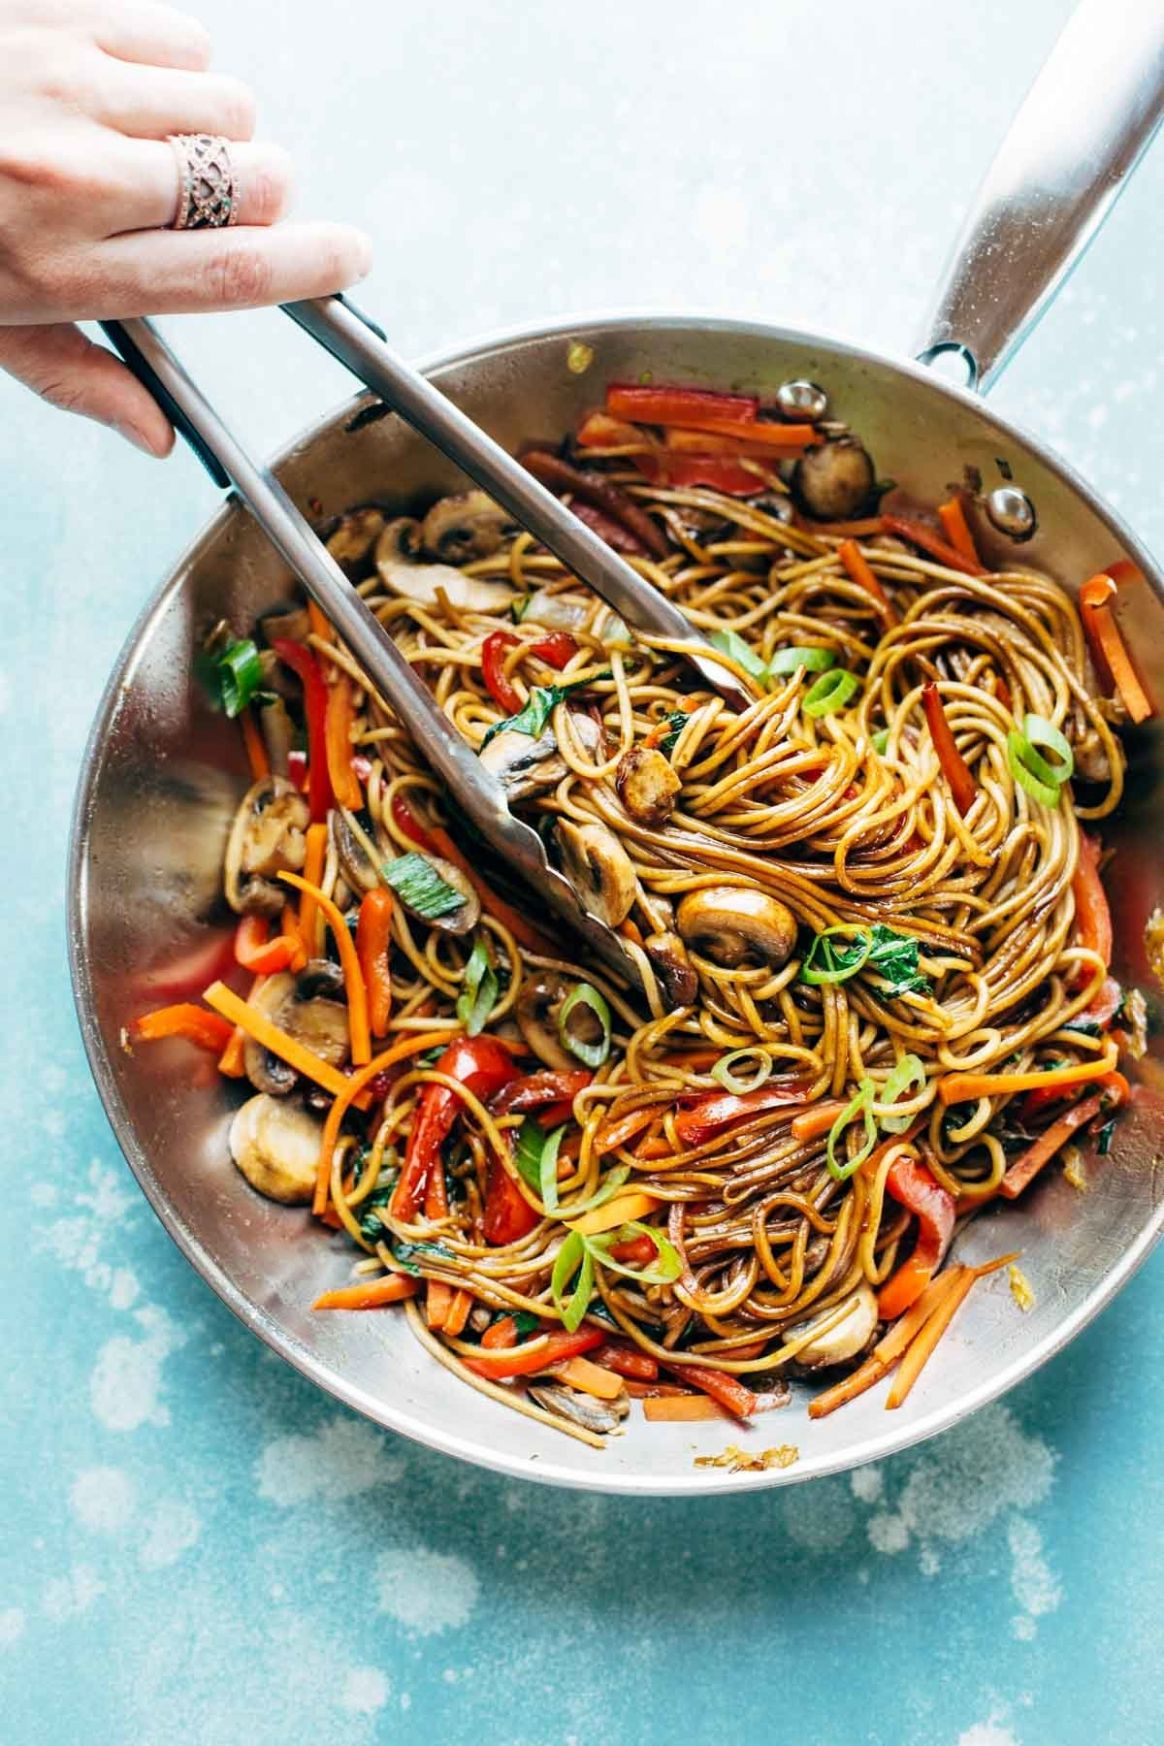 12 Easy Dinner Ideas For When You're Not Sure What To Make